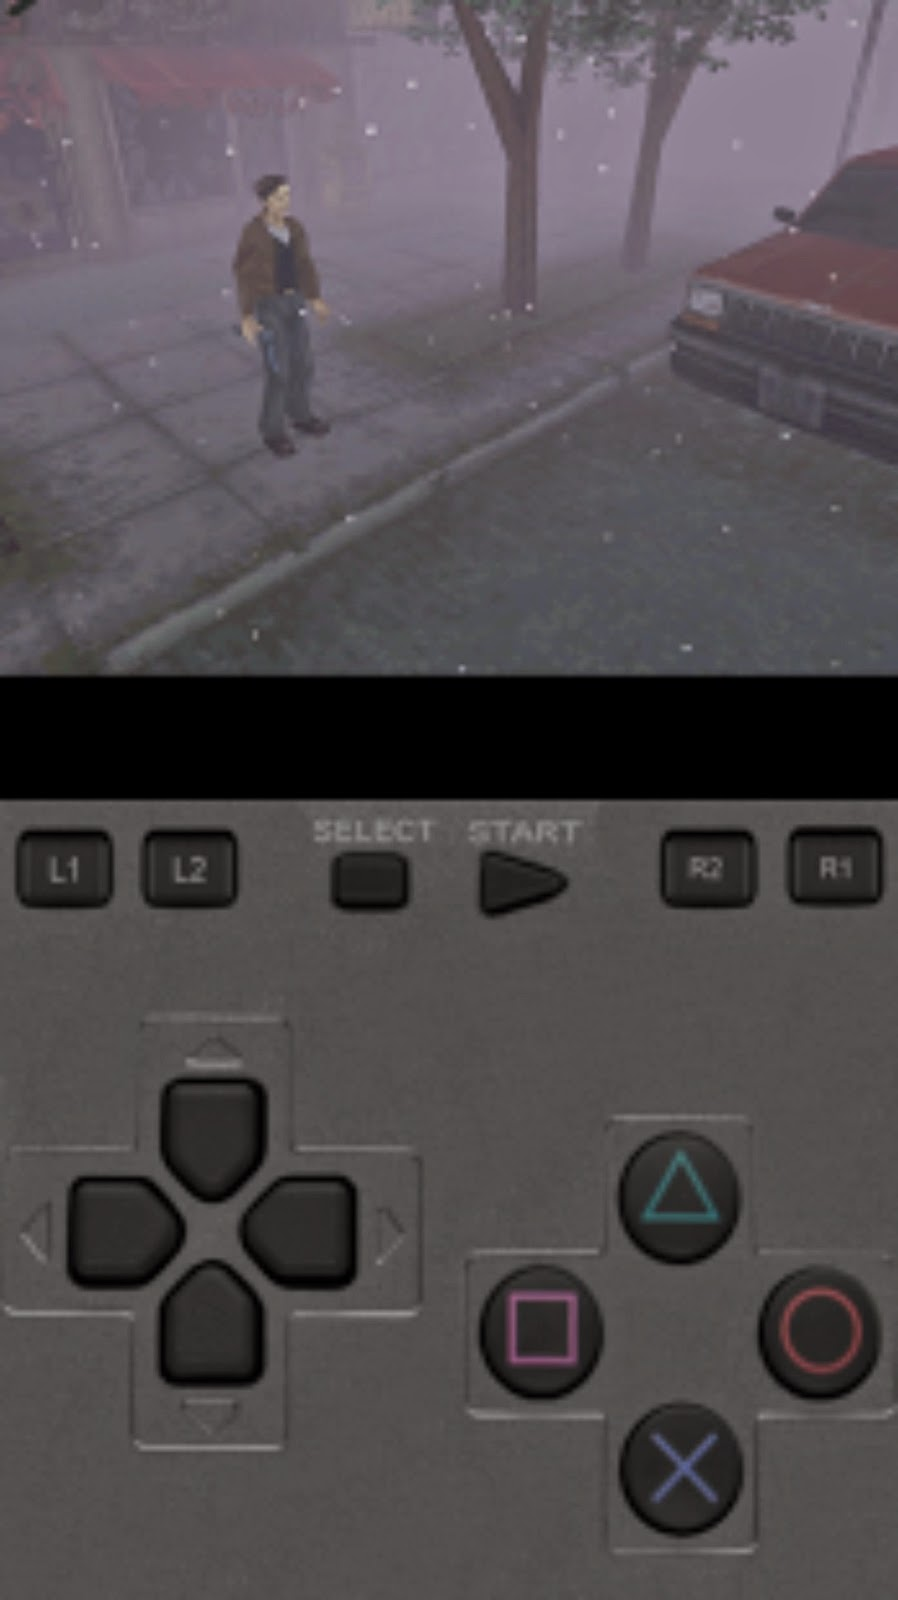 Epsxe Apk Free Android Full Download